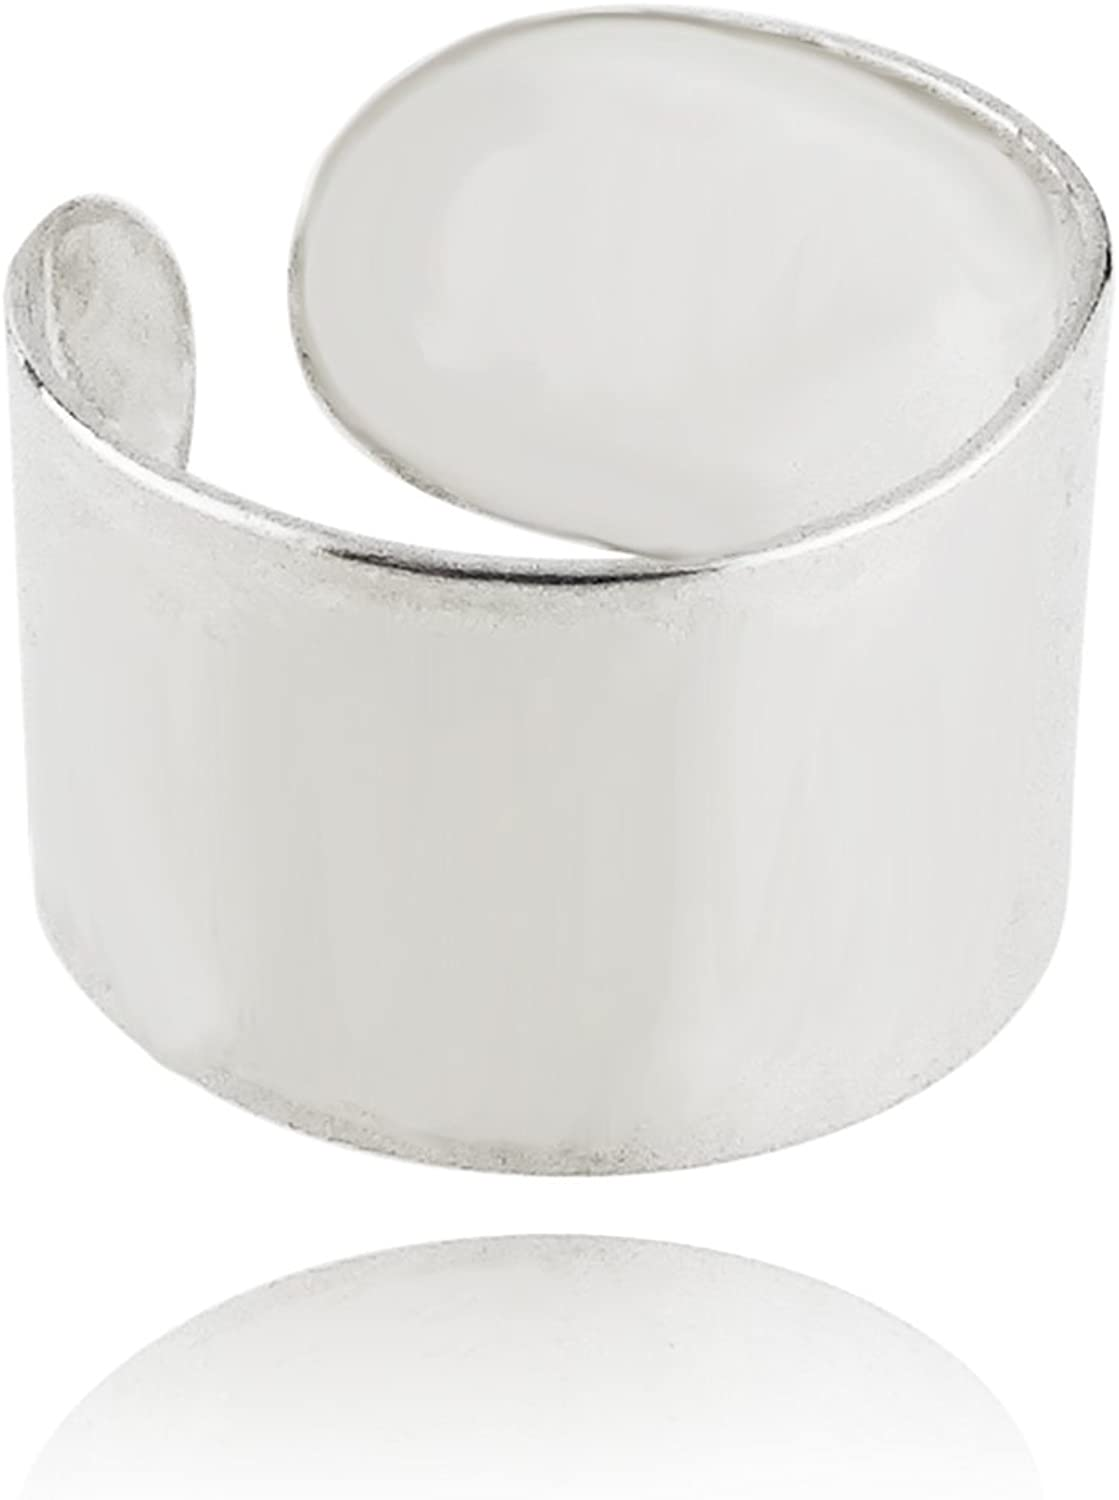 Polished Sterling Latest item Silver Adjustable 7mm Direct stock discount Ear Cuff Wrap Band Wide